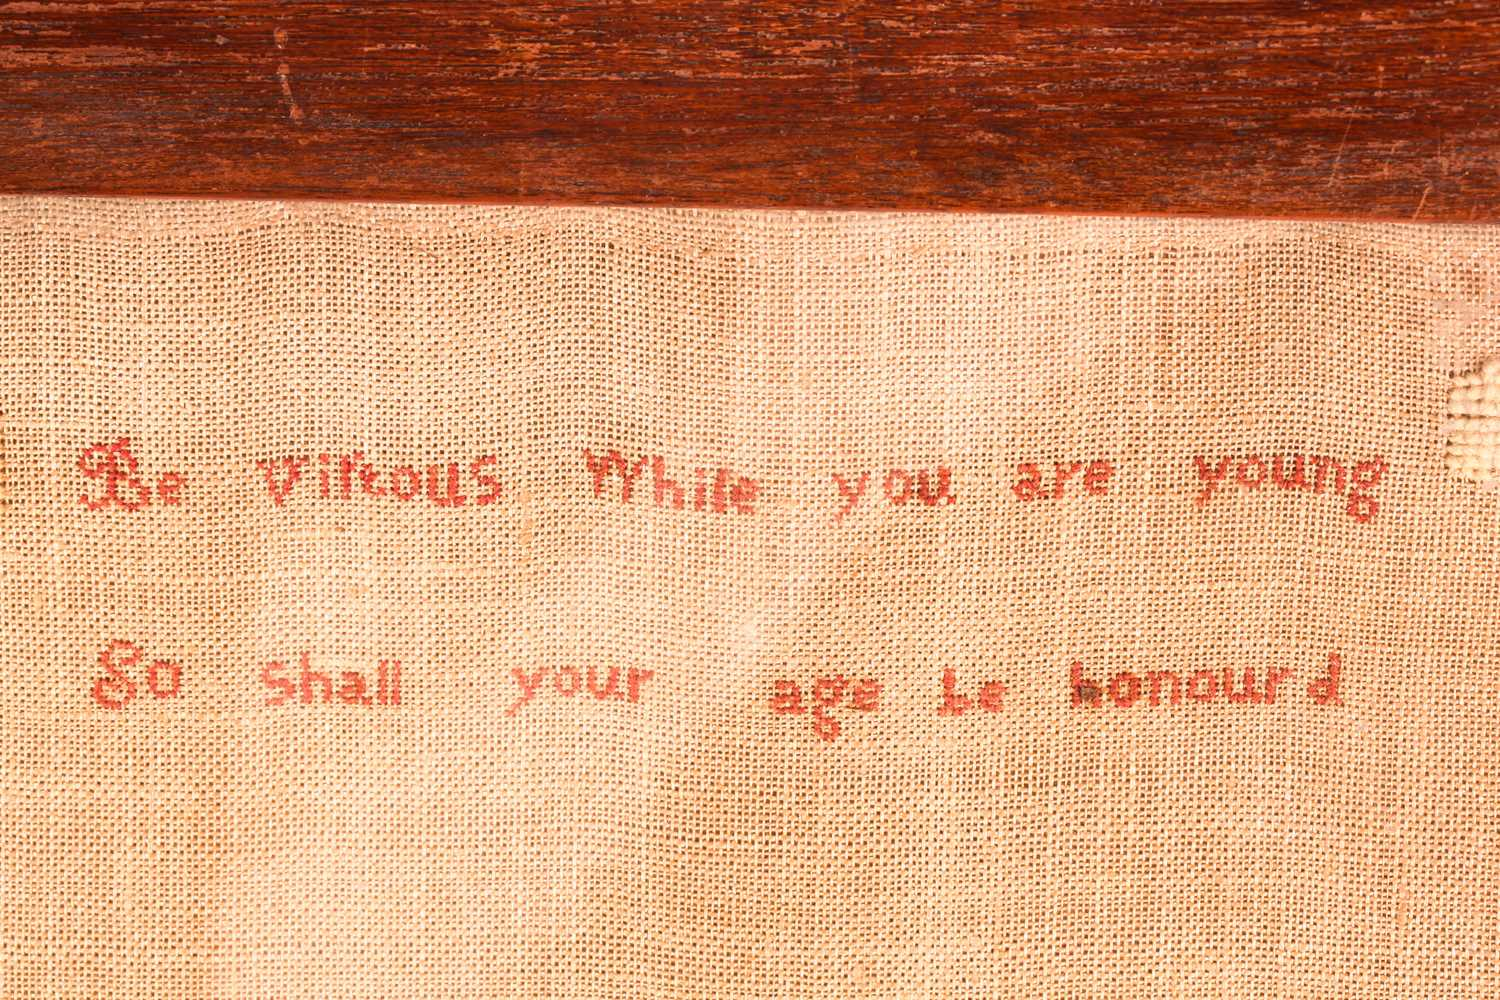 A large 19th century sampler, with trumpeting angels flanking verse ' Be vituous while you are - Image 4 of 4